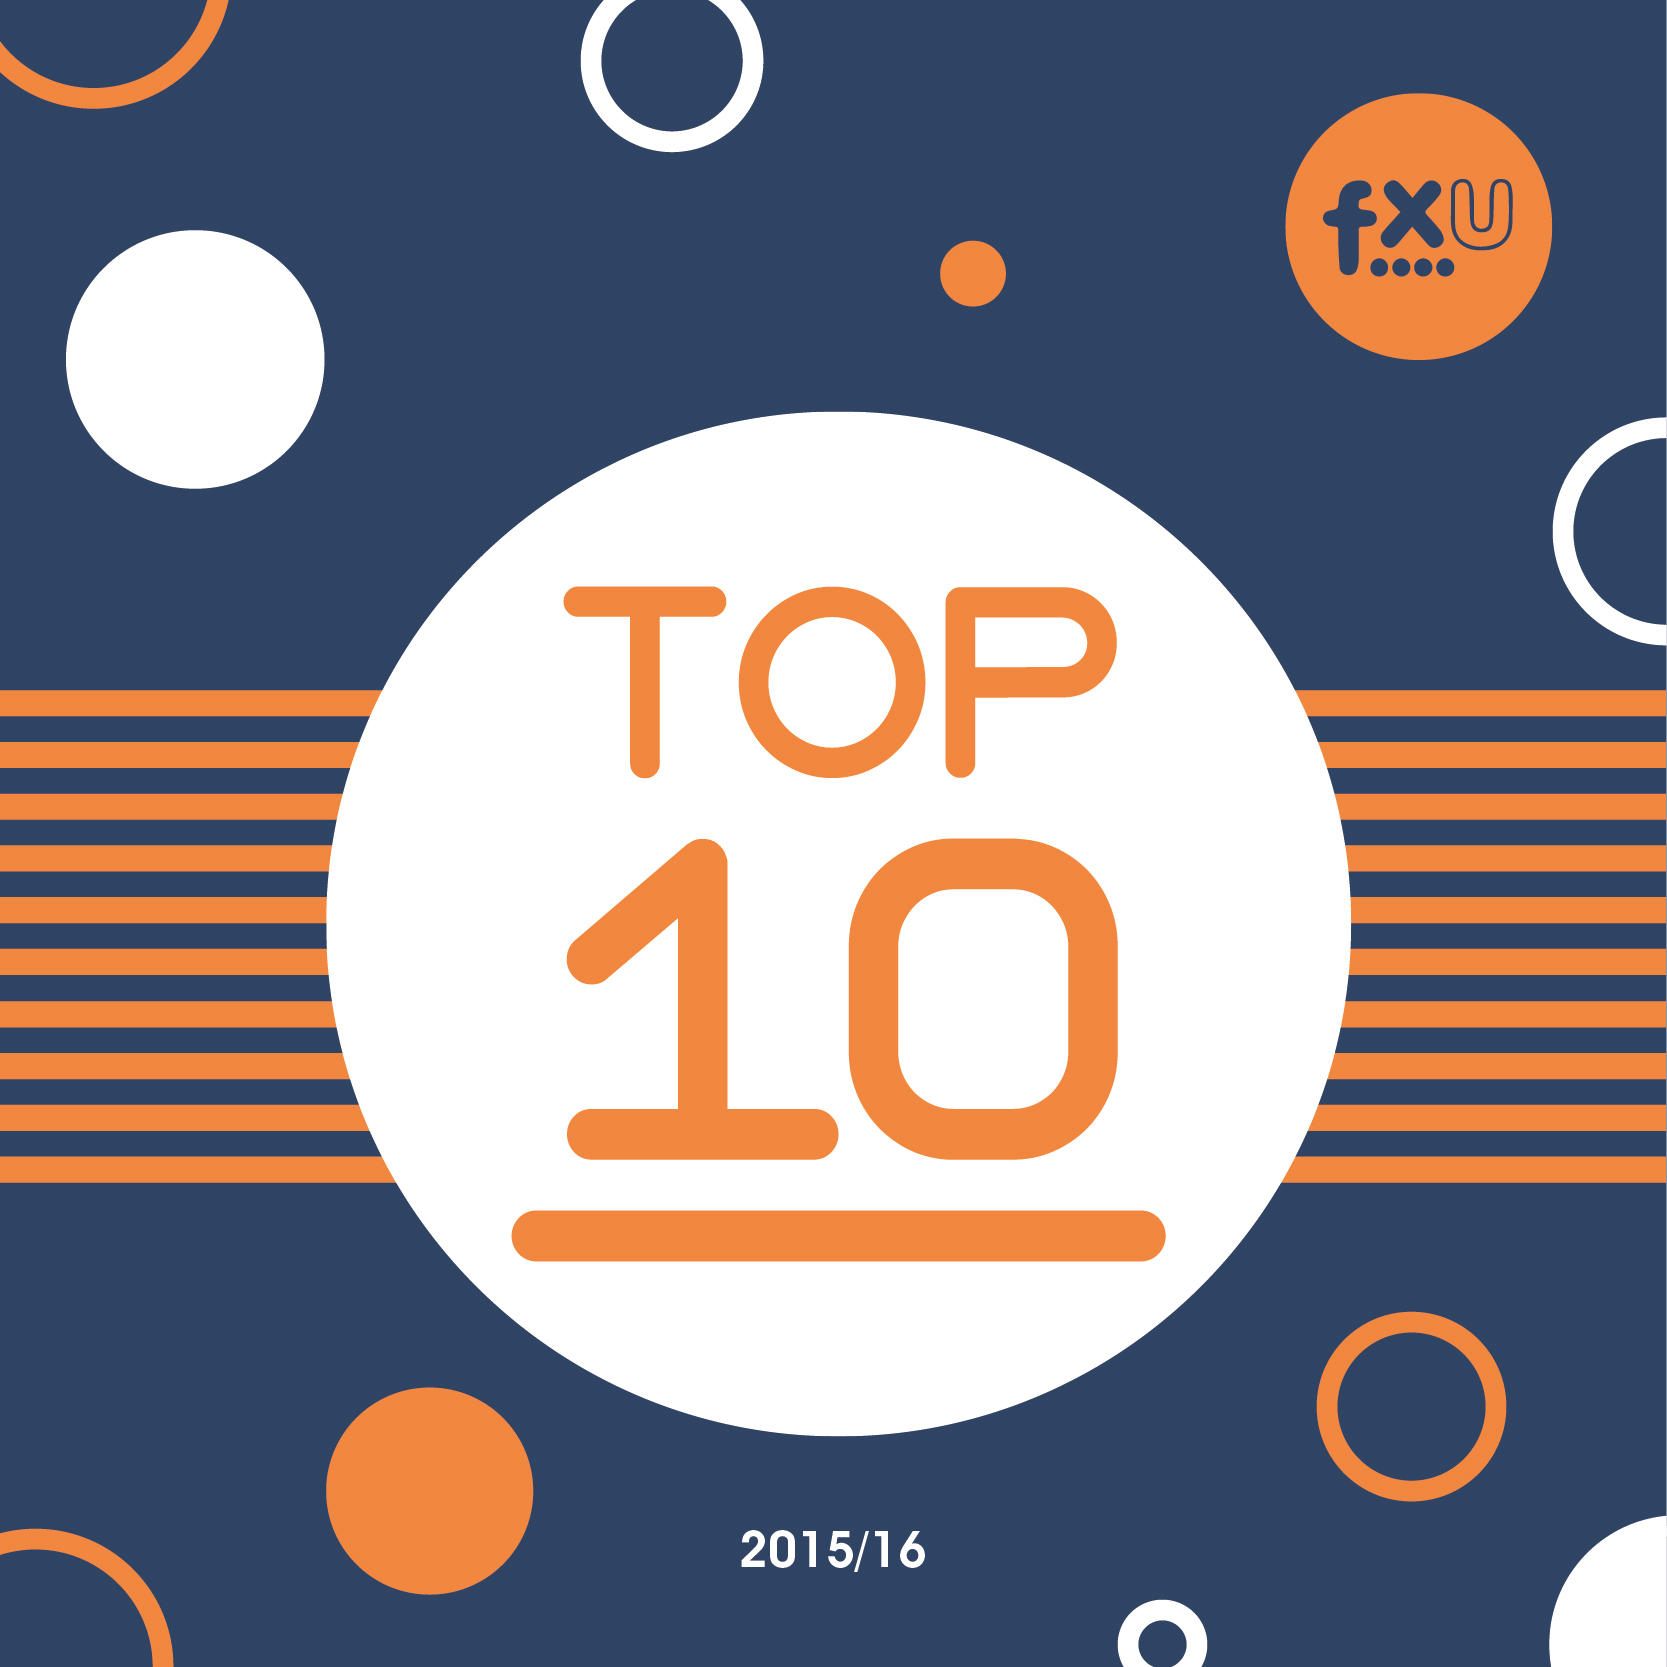 FXU Top 10 Priorities 2015/16